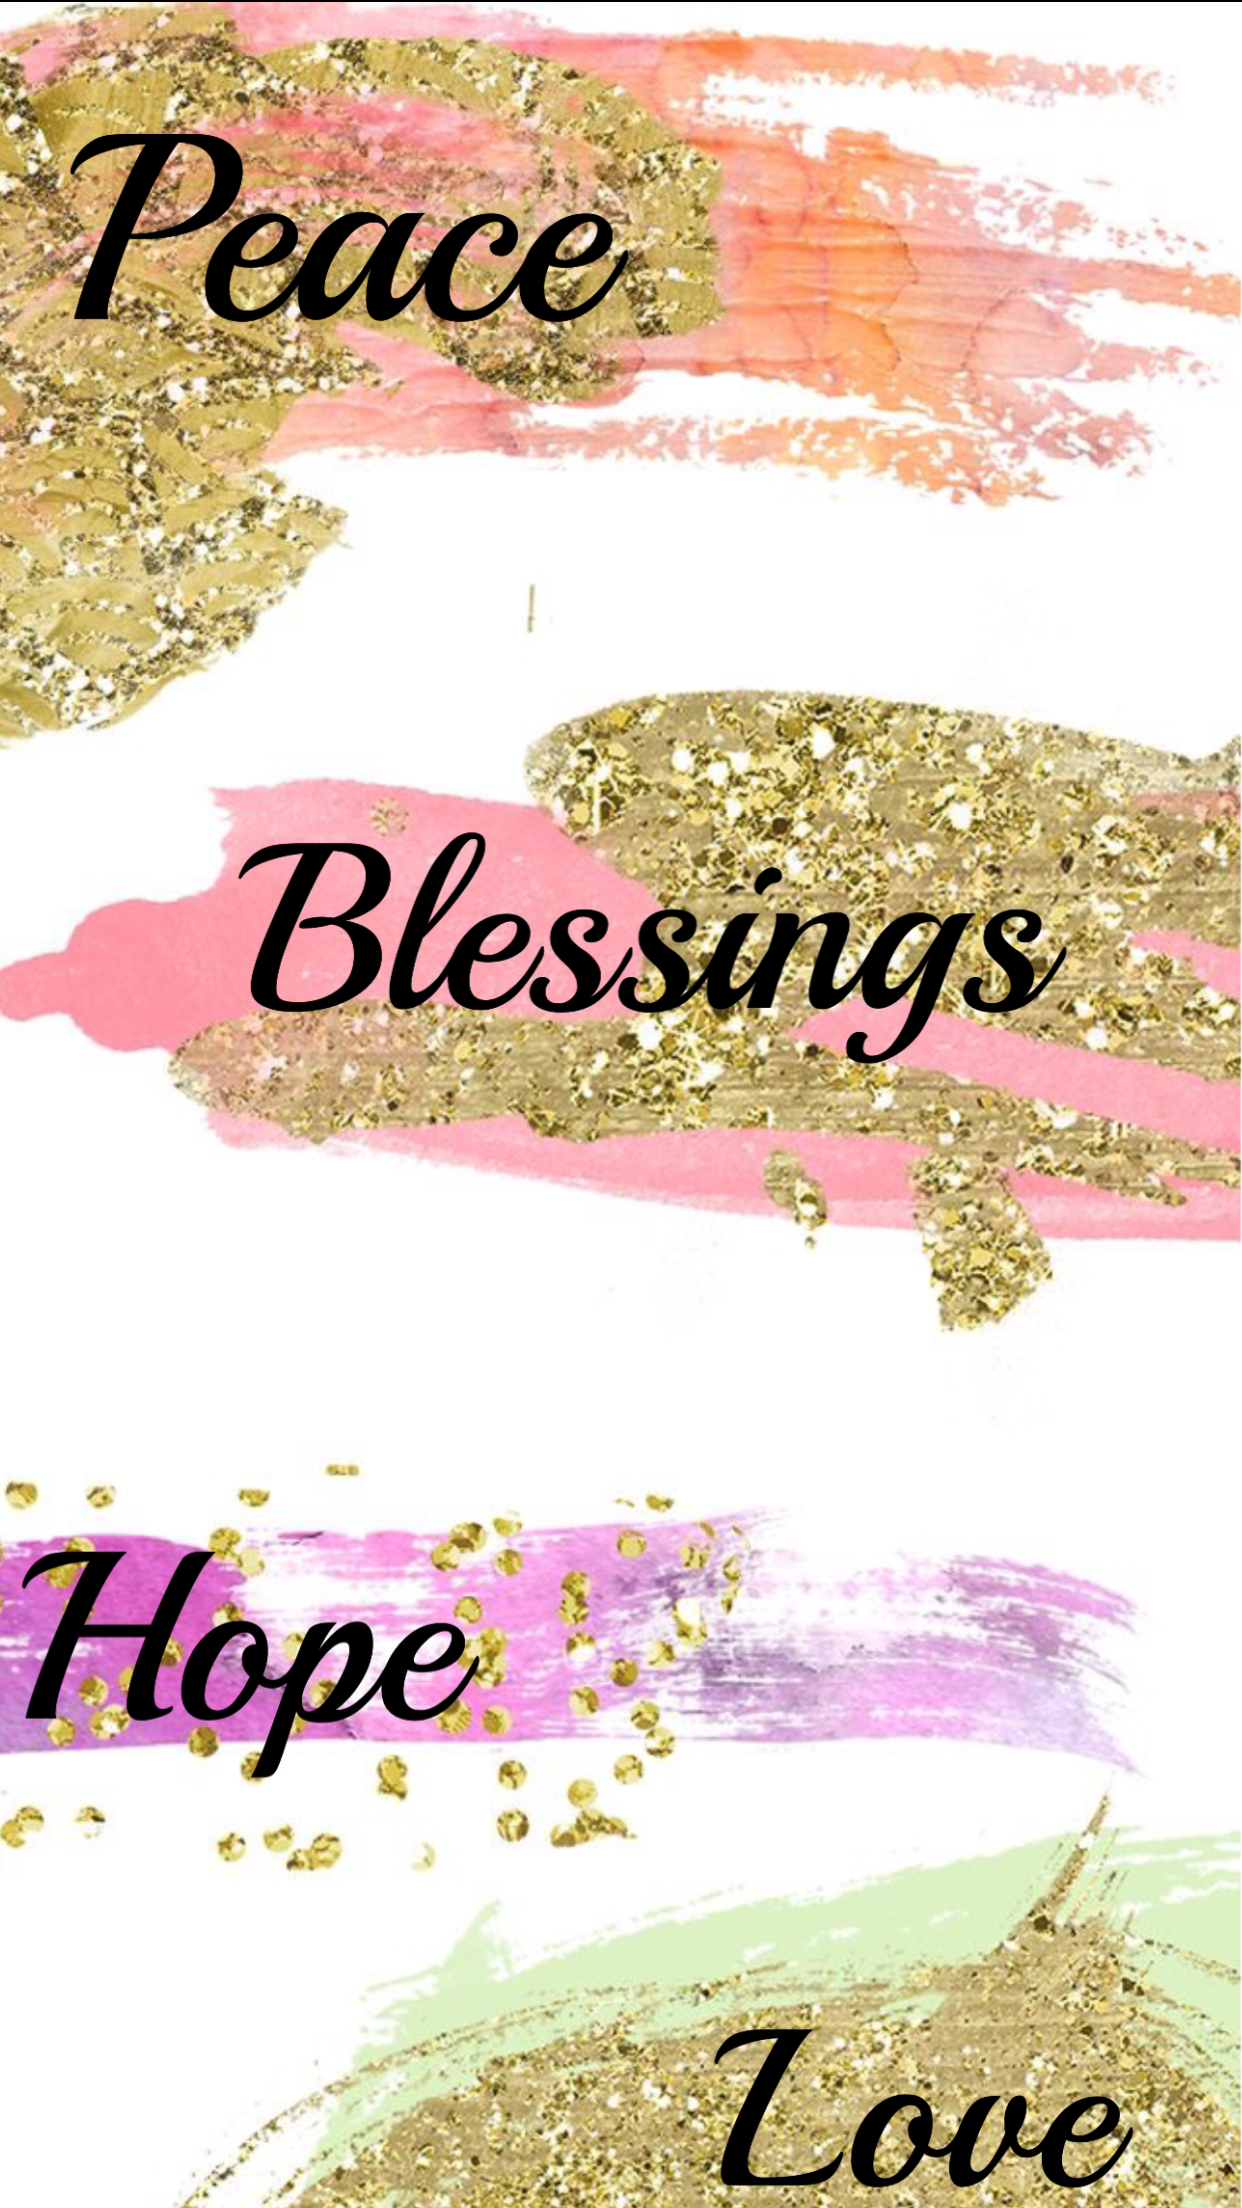 peace and blessings iphone wallpaper wallpapers iphone wallpaper